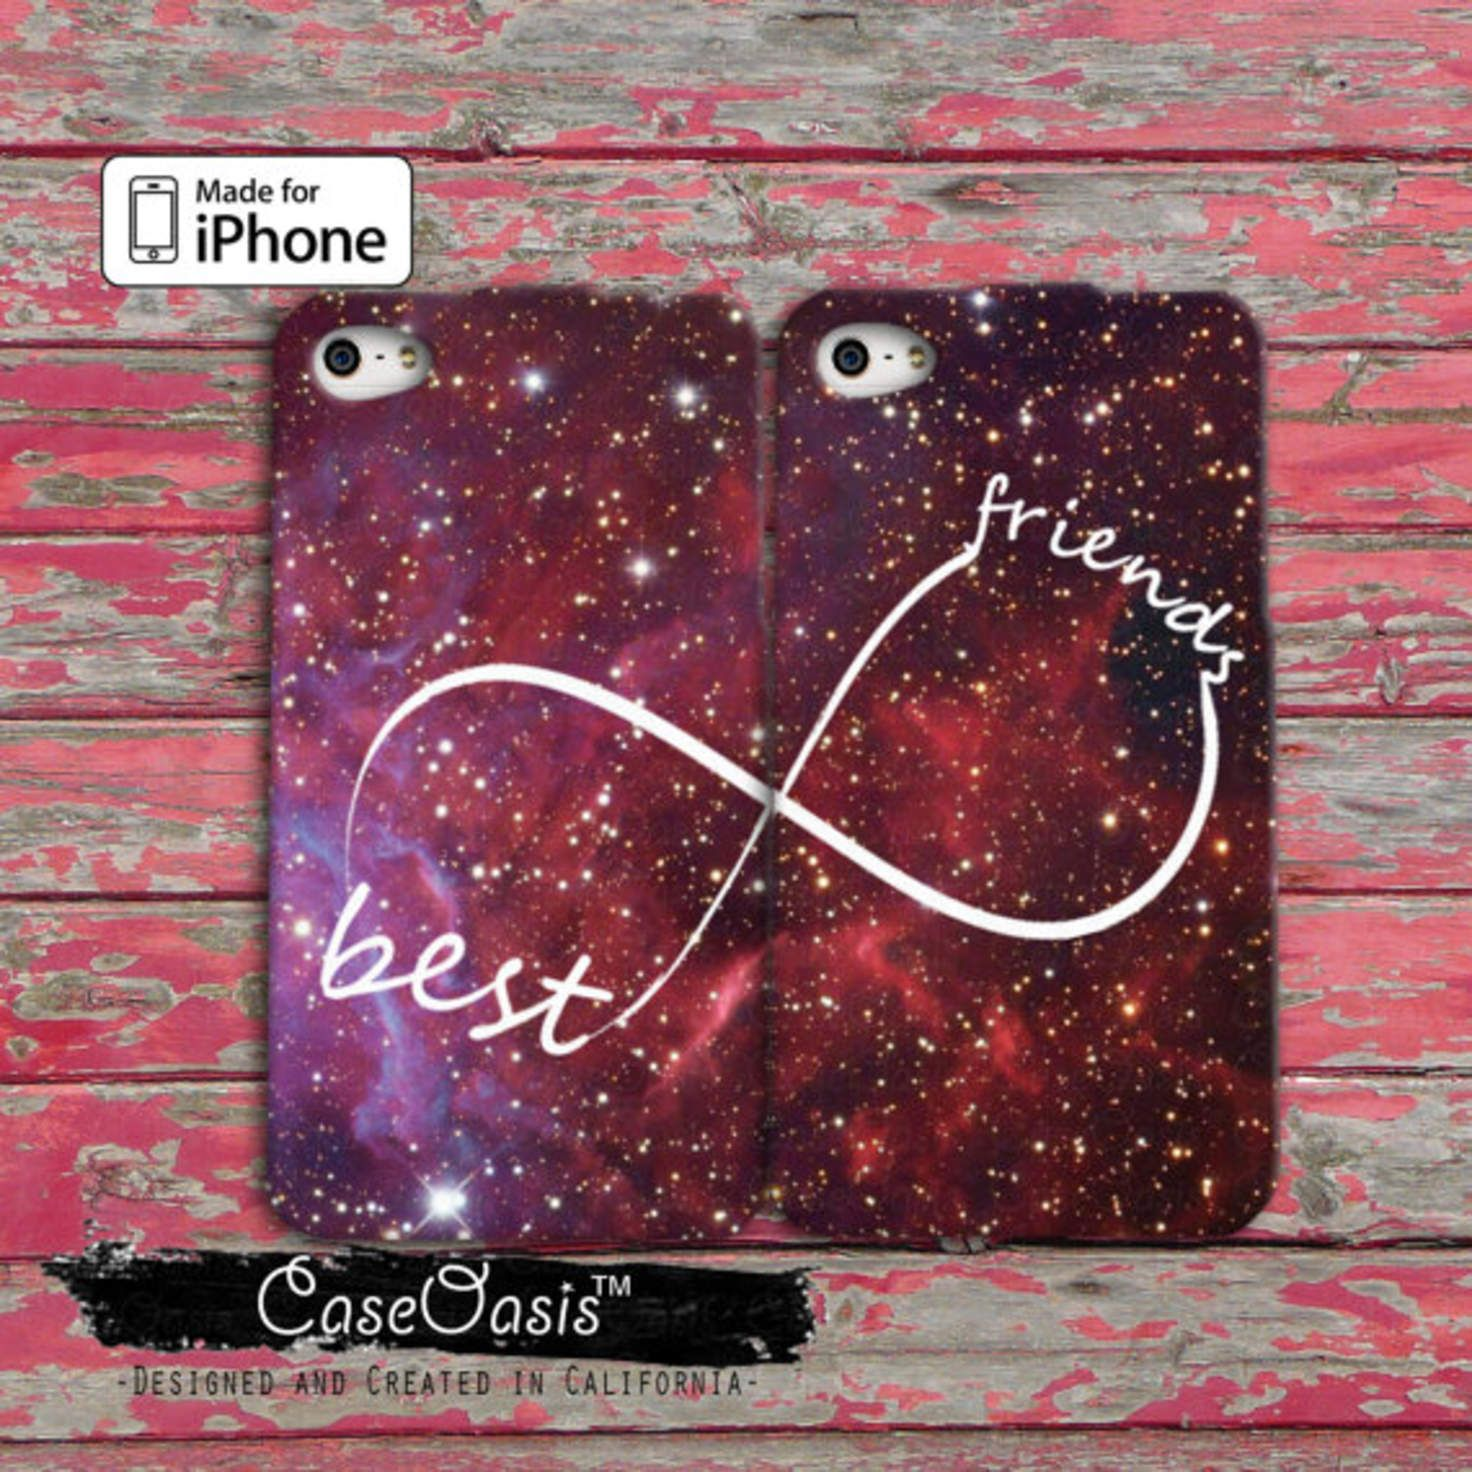 Best friends infinity symbol space galaxy pair matching iphone 44s best friends infinity symbol space galaxy pair matching iphone 44s case and iphone 5 biocorpaavc Choice Image